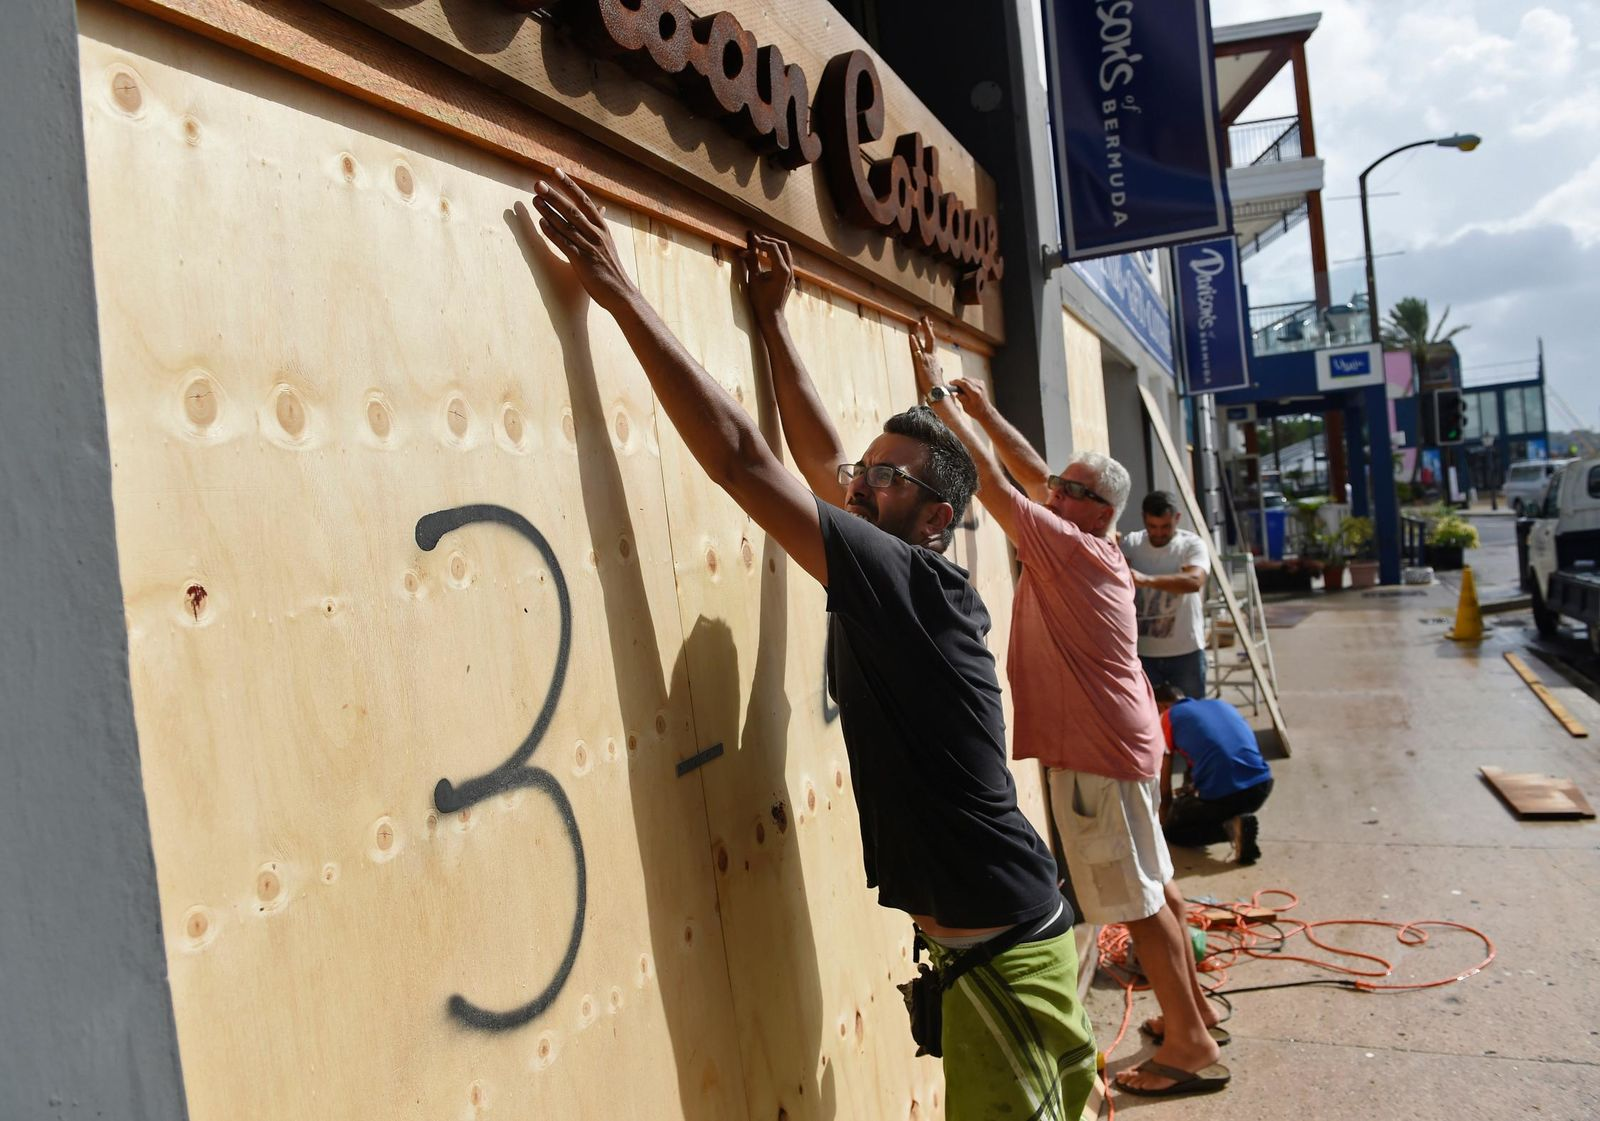 People board up an Urban Cottage store in preparation for Hurricane Humberto in Hamilton, Bermuda, Wednesday, Sept. 18, 2019. Bermuda's government called up troops and urged people on the British Atlantic island to make final preparations for an expected close brush Wednesday with Hurricane Humberto, a powerful Category 3 storm. Authorities ordered early closings of schools, transportation and government offices. (AP Photo/Akil J. Simmons)